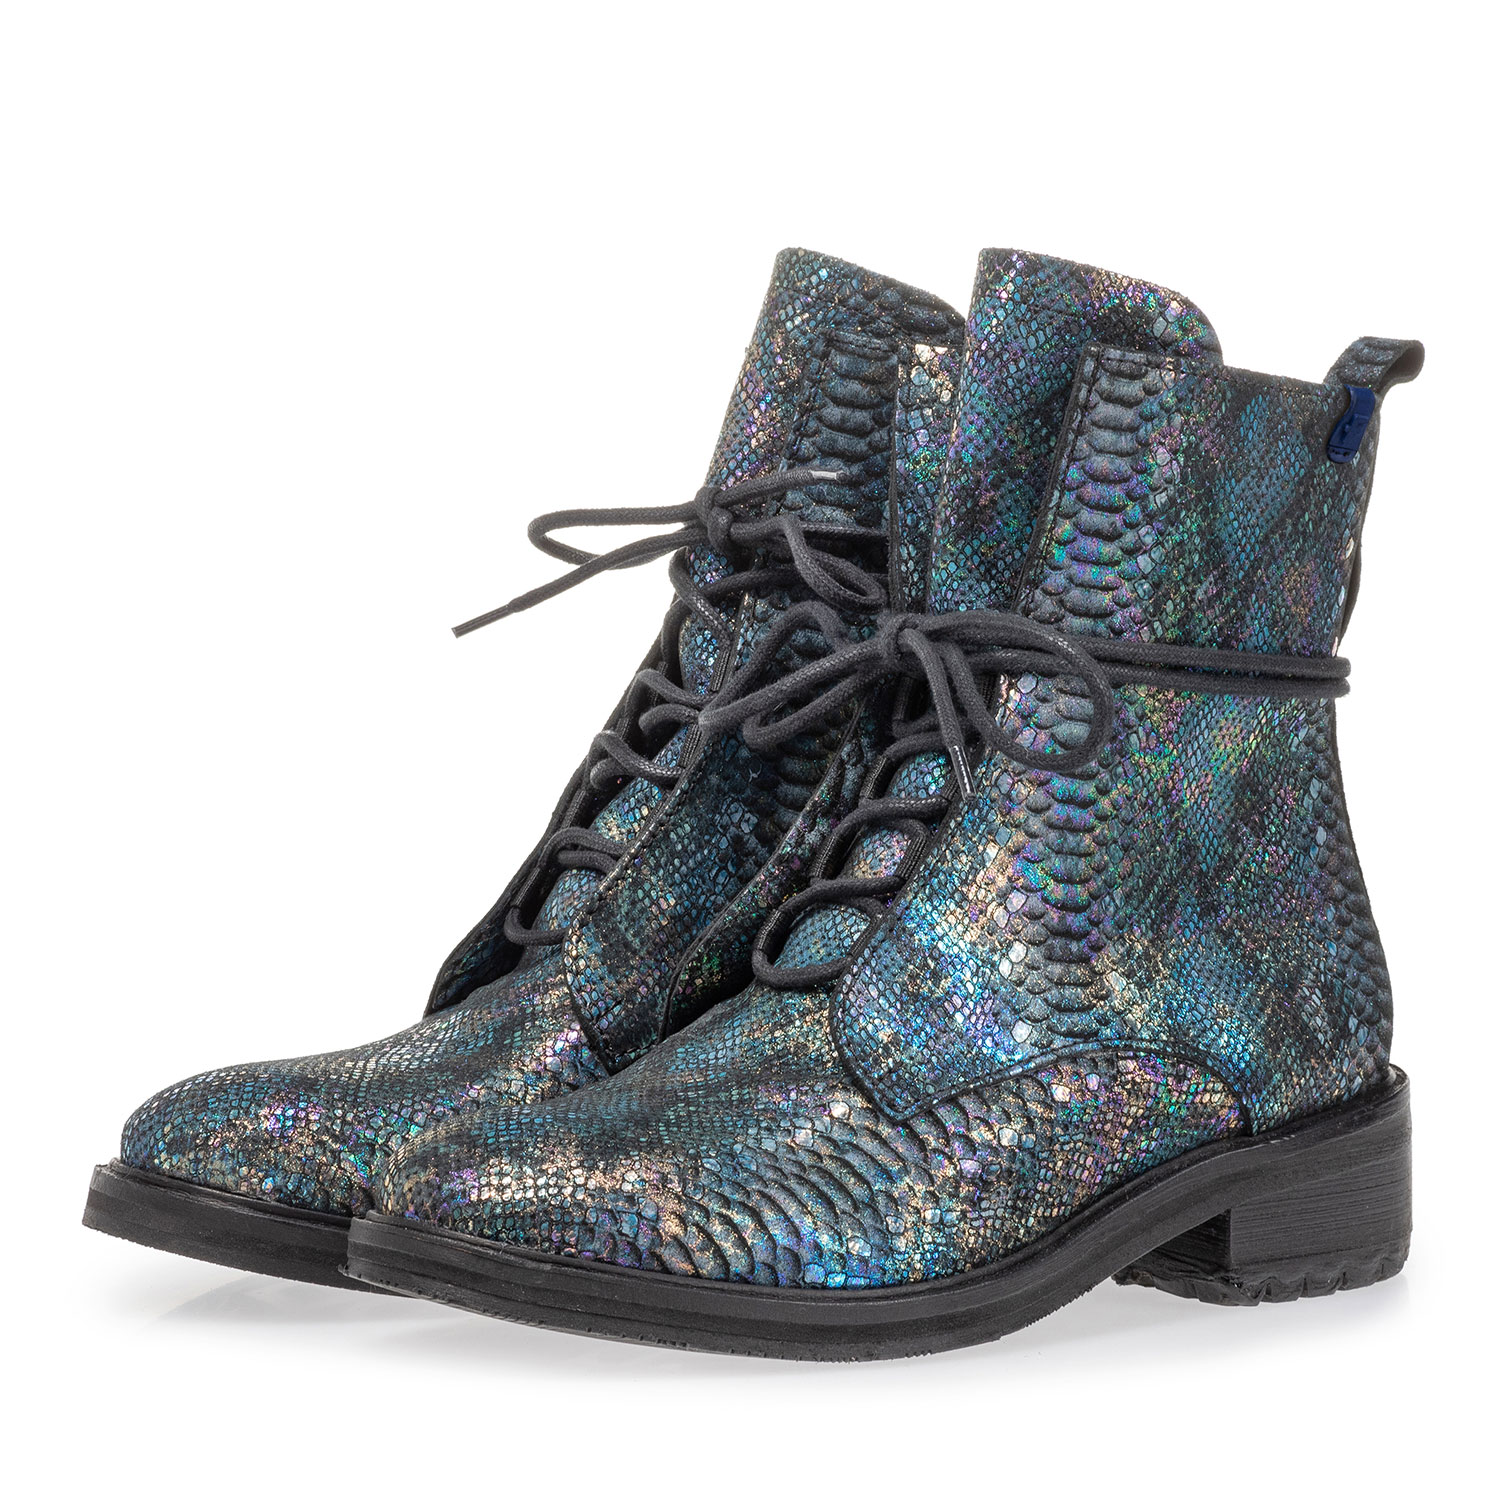 85647/02 - Lace boot snake print multi-colour